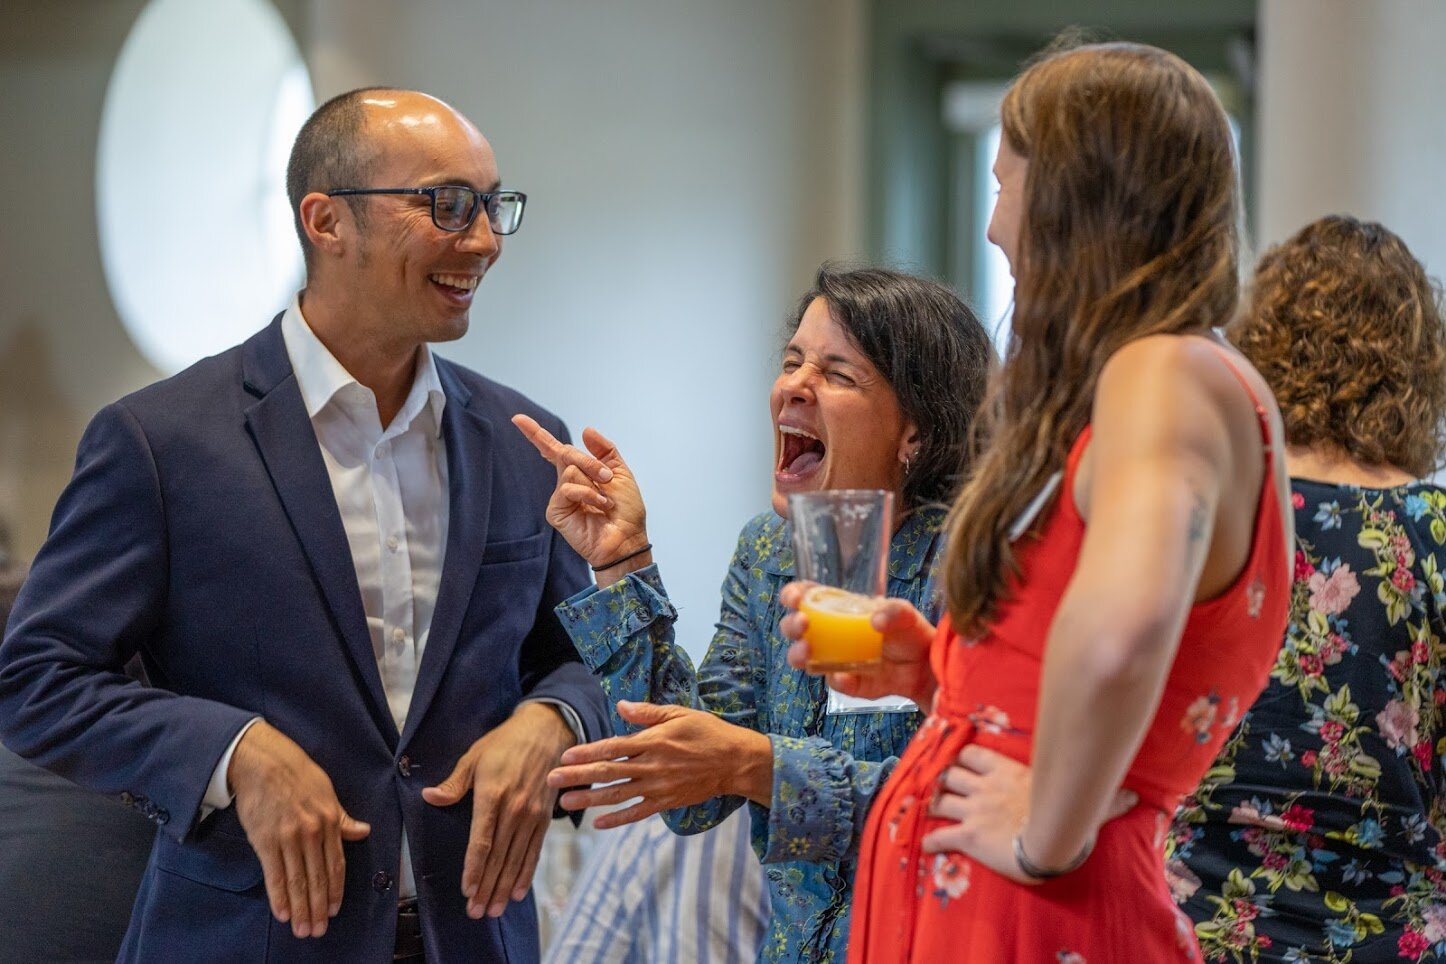 Wasim Muklashy Photography_ECO Garden Party 2019_Portland_Oregon_228.jpg